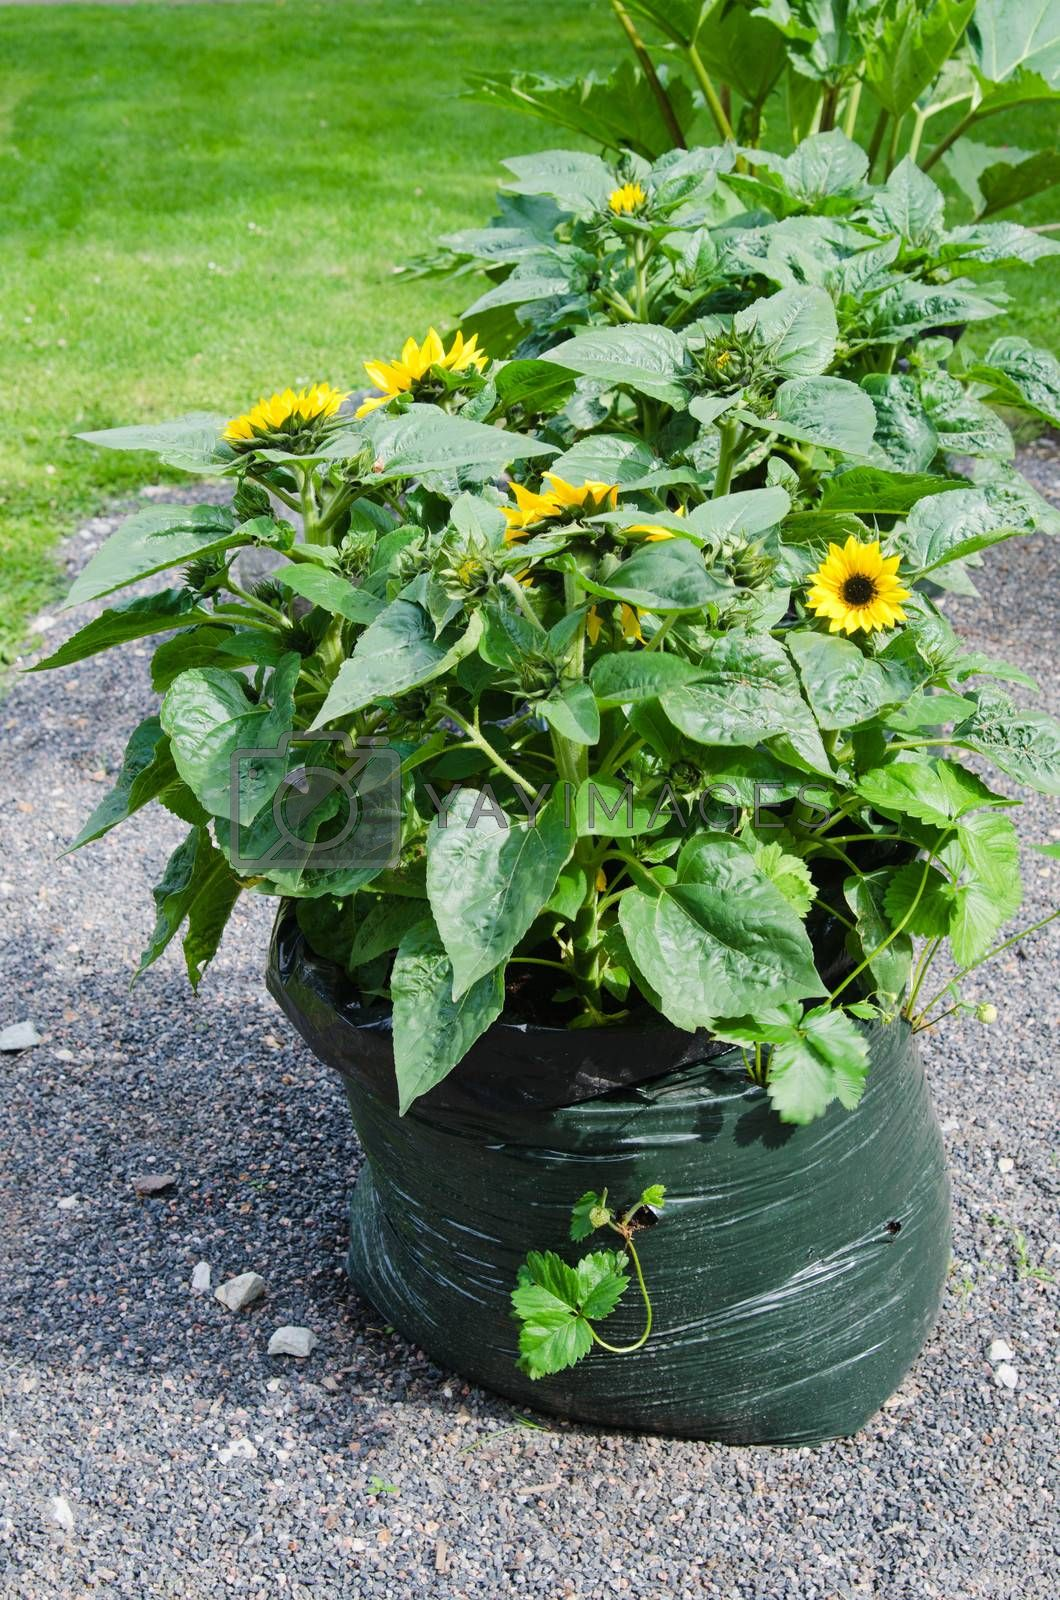 Sunflowers grow in a bag from under garbage